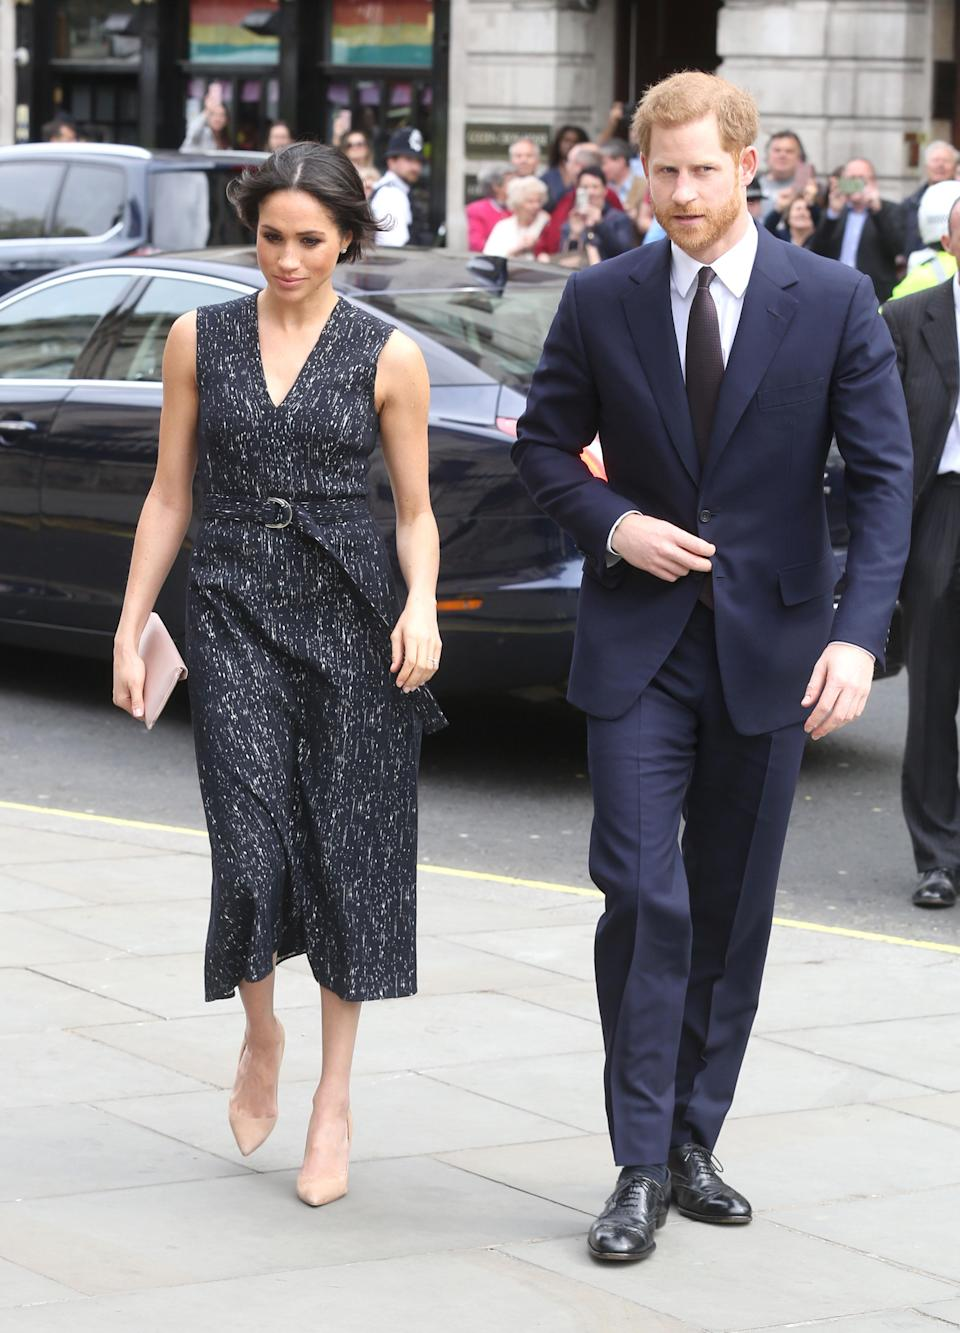 <p>The couple arrive at a memorial service for Stephen Lawrence in Trafalgar Square in London. Prince Harry is set to read a message on behalf of his father, Prince Charles. </p>